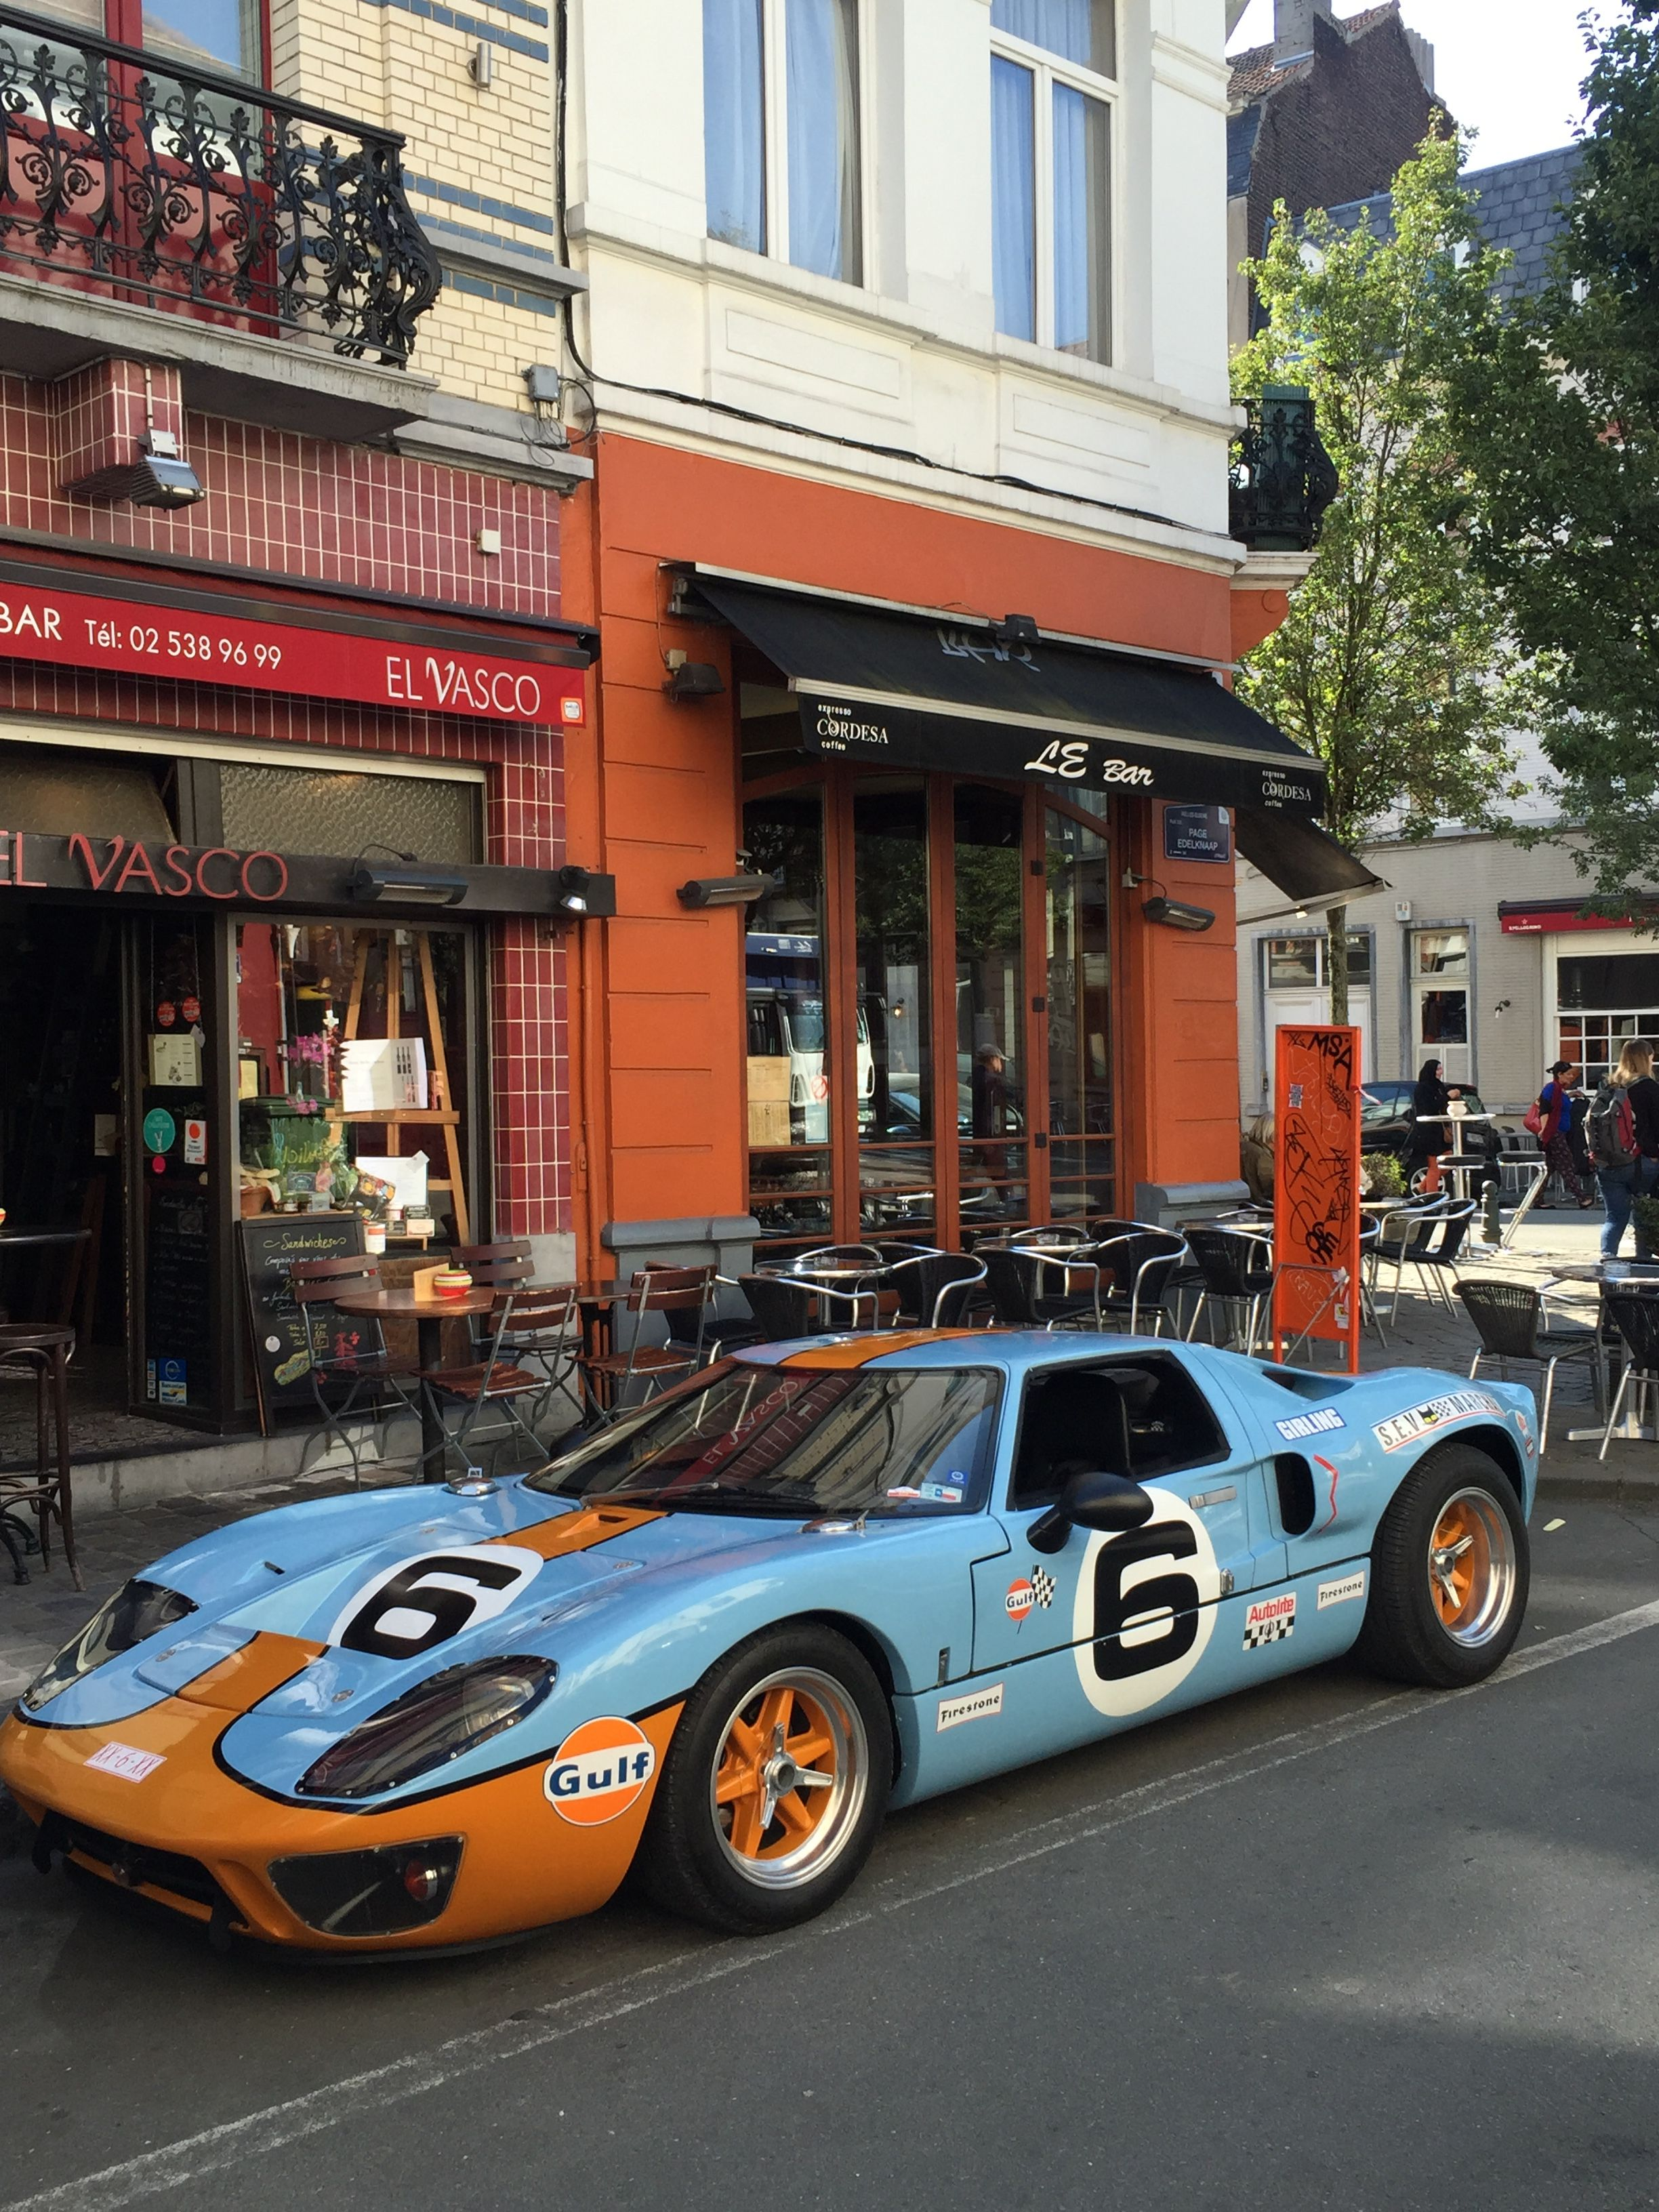 Pin By David Upton On Cars Ford Gt Retro Cars Vintage Racing